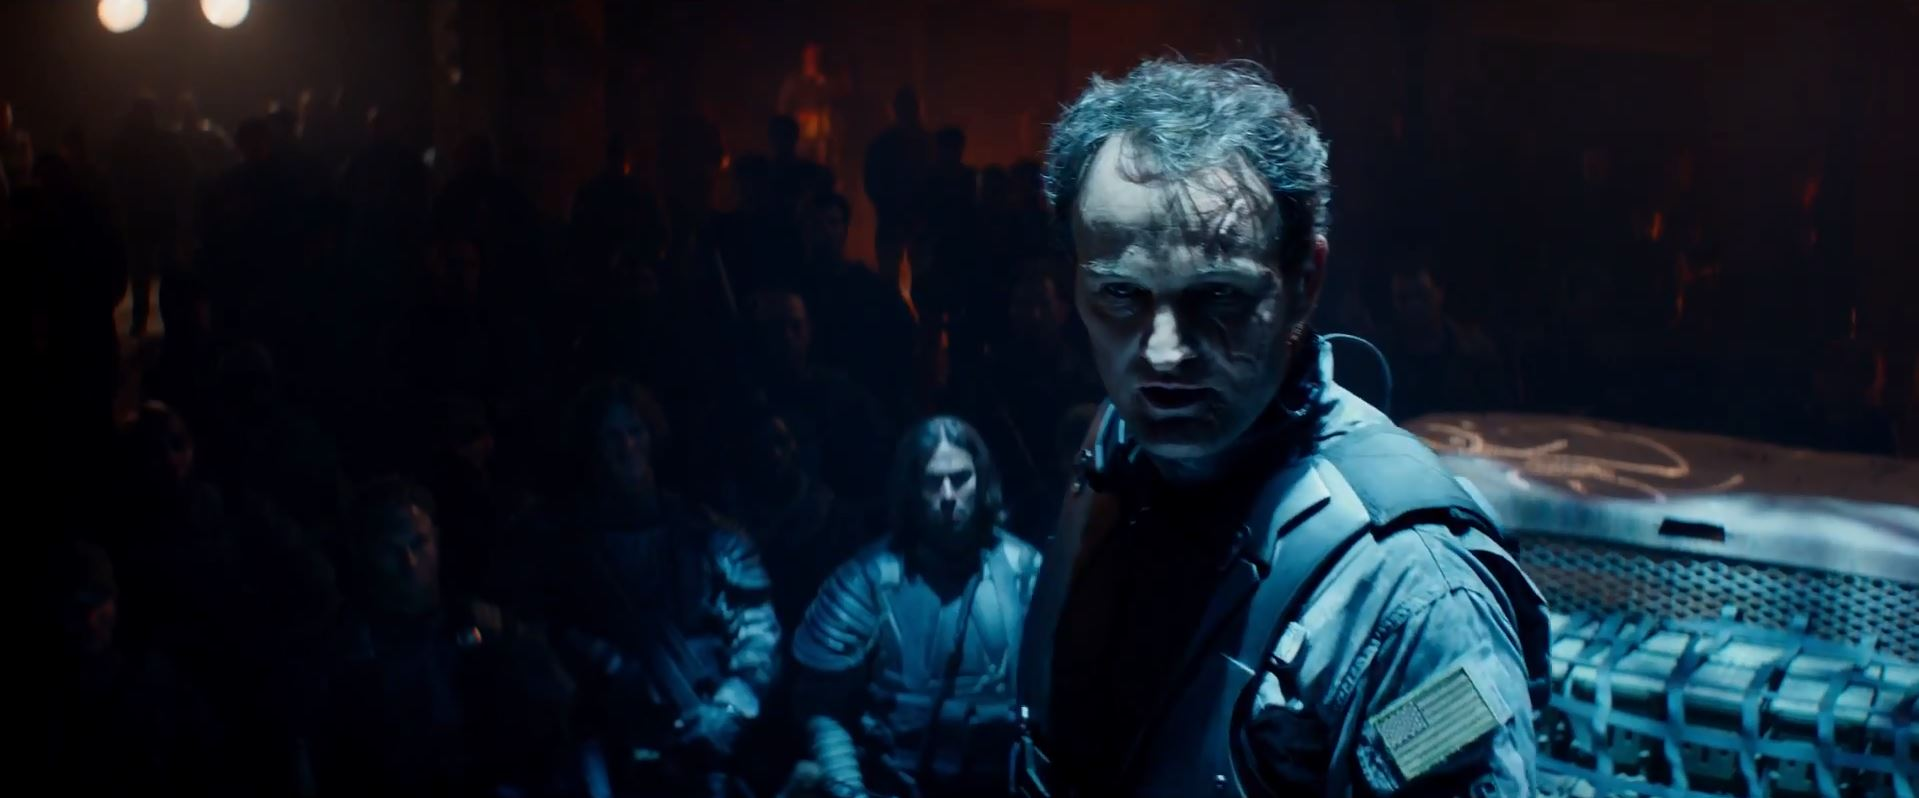 Terminator Genisys Jason Clarke as John Connor